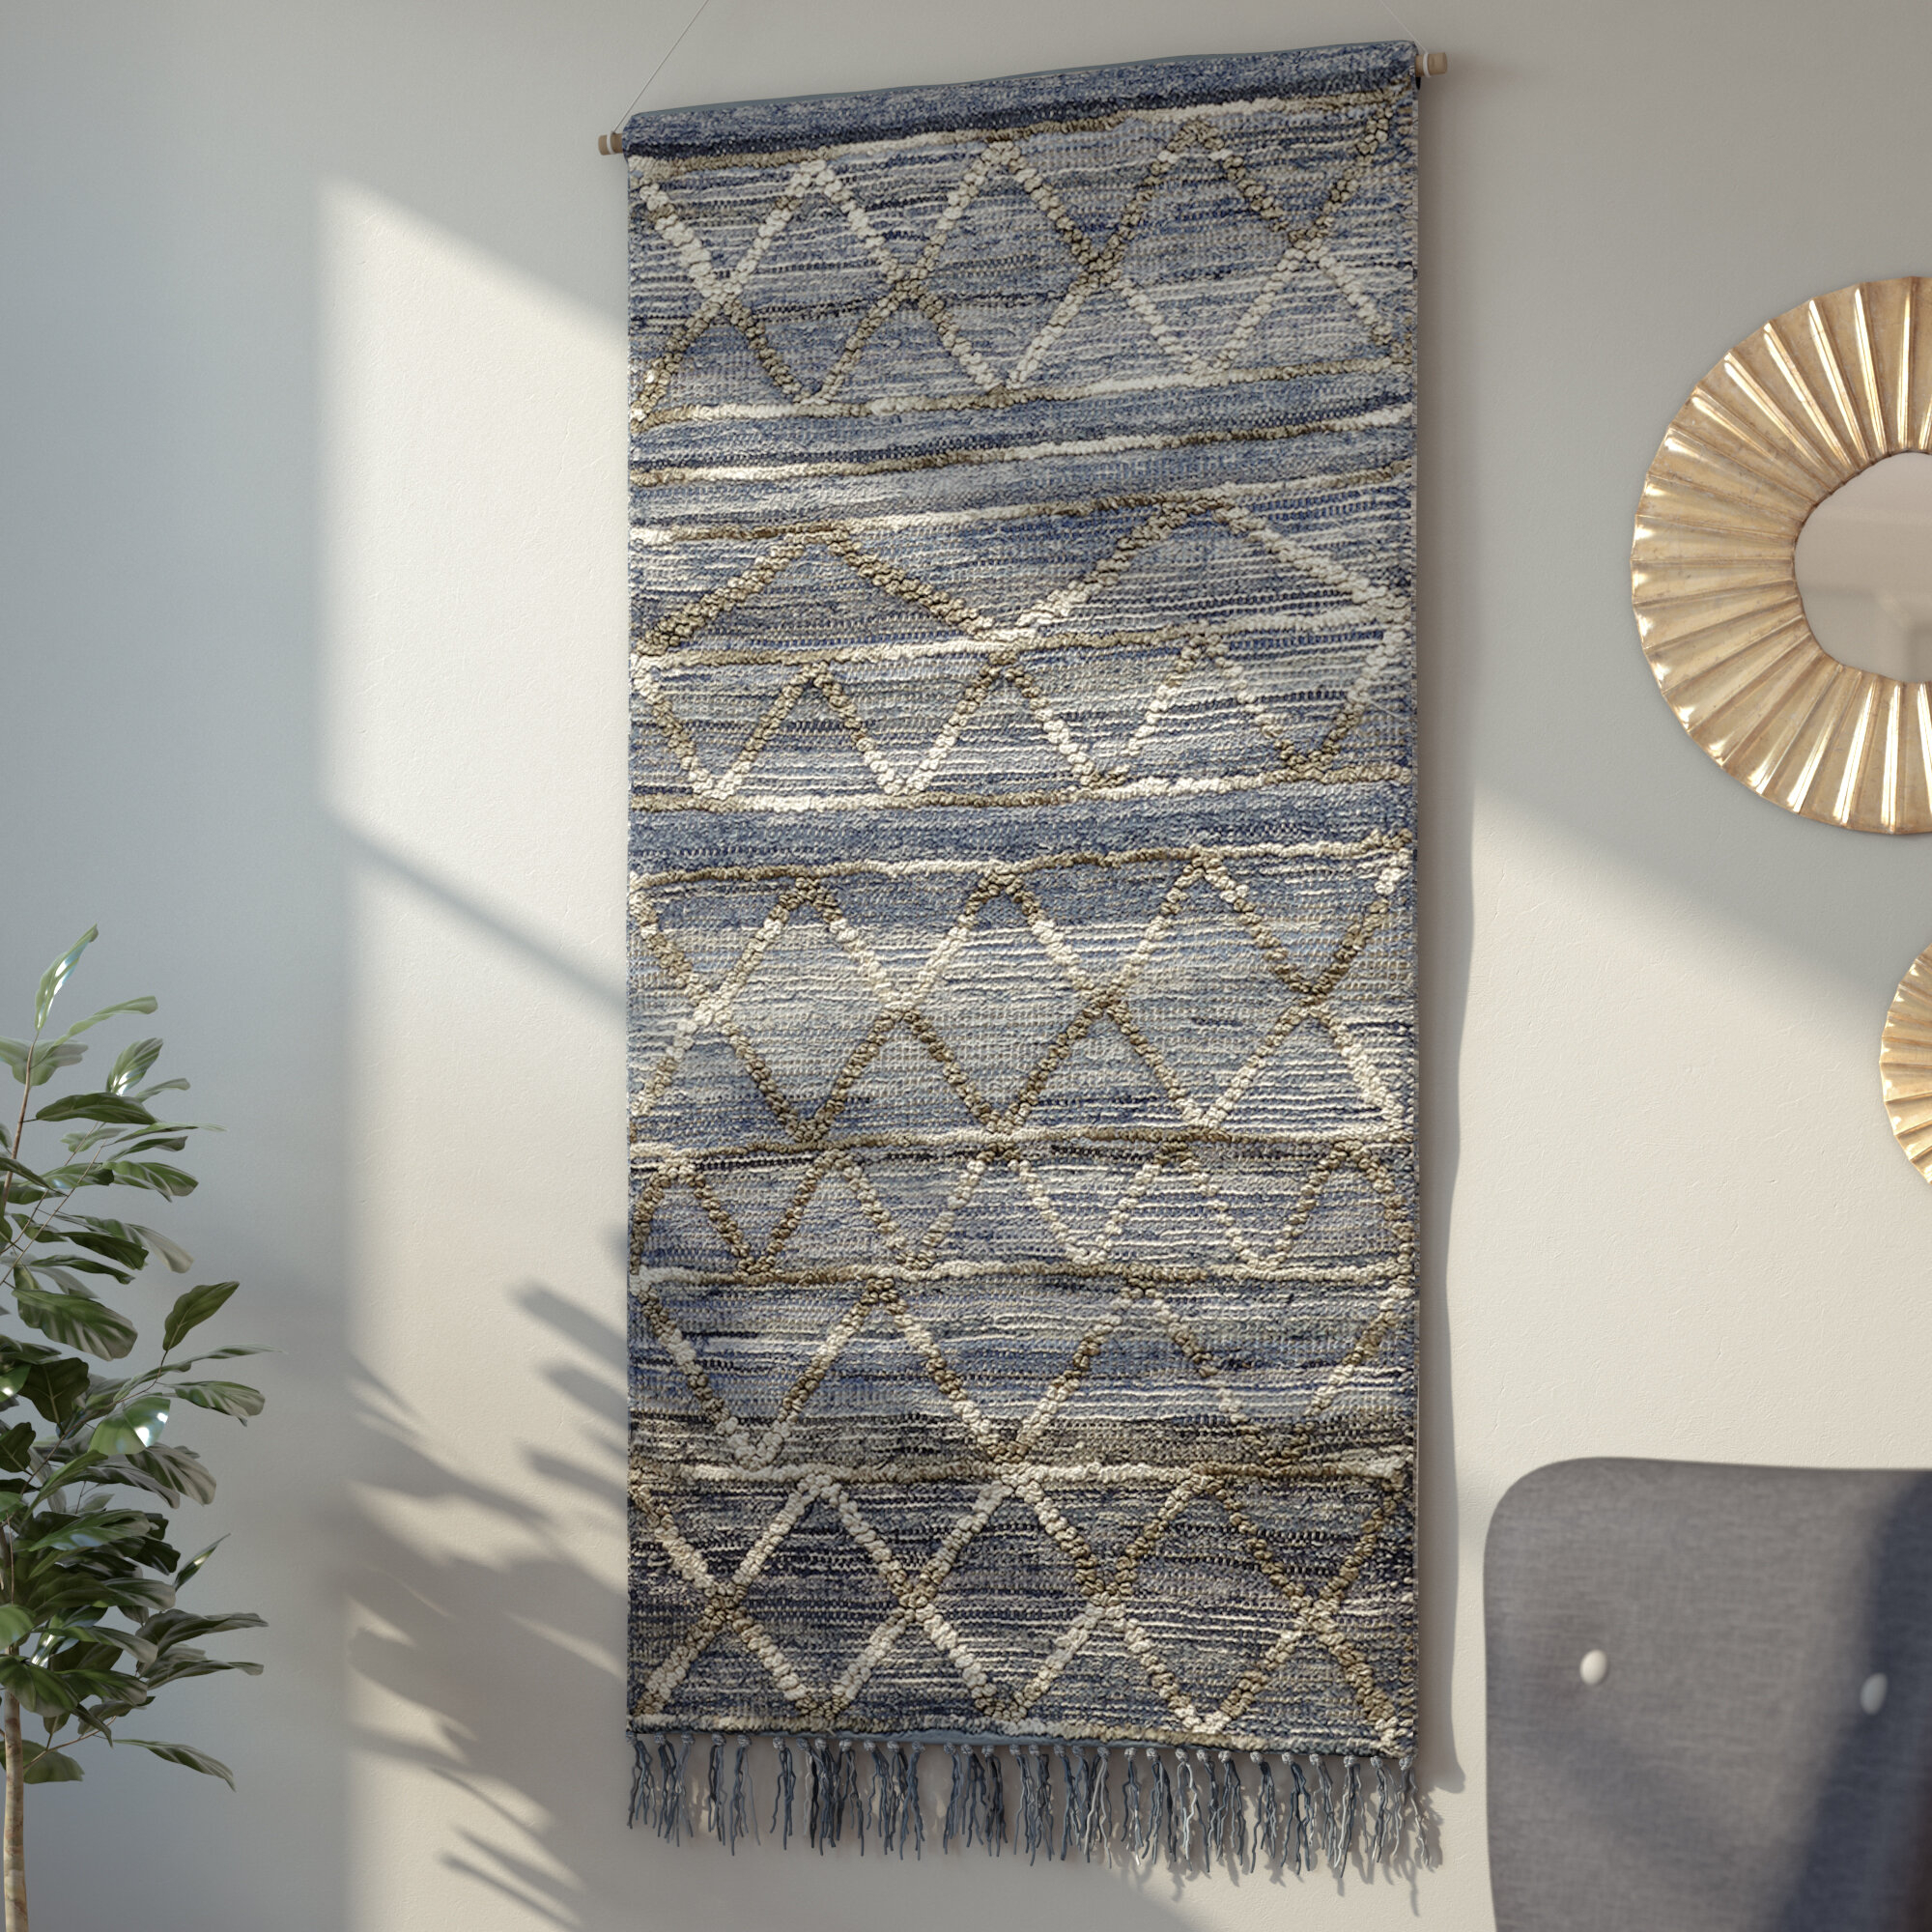 Featured Photo of Blended Fabric Wall Hangings with Hanging Accessories Included